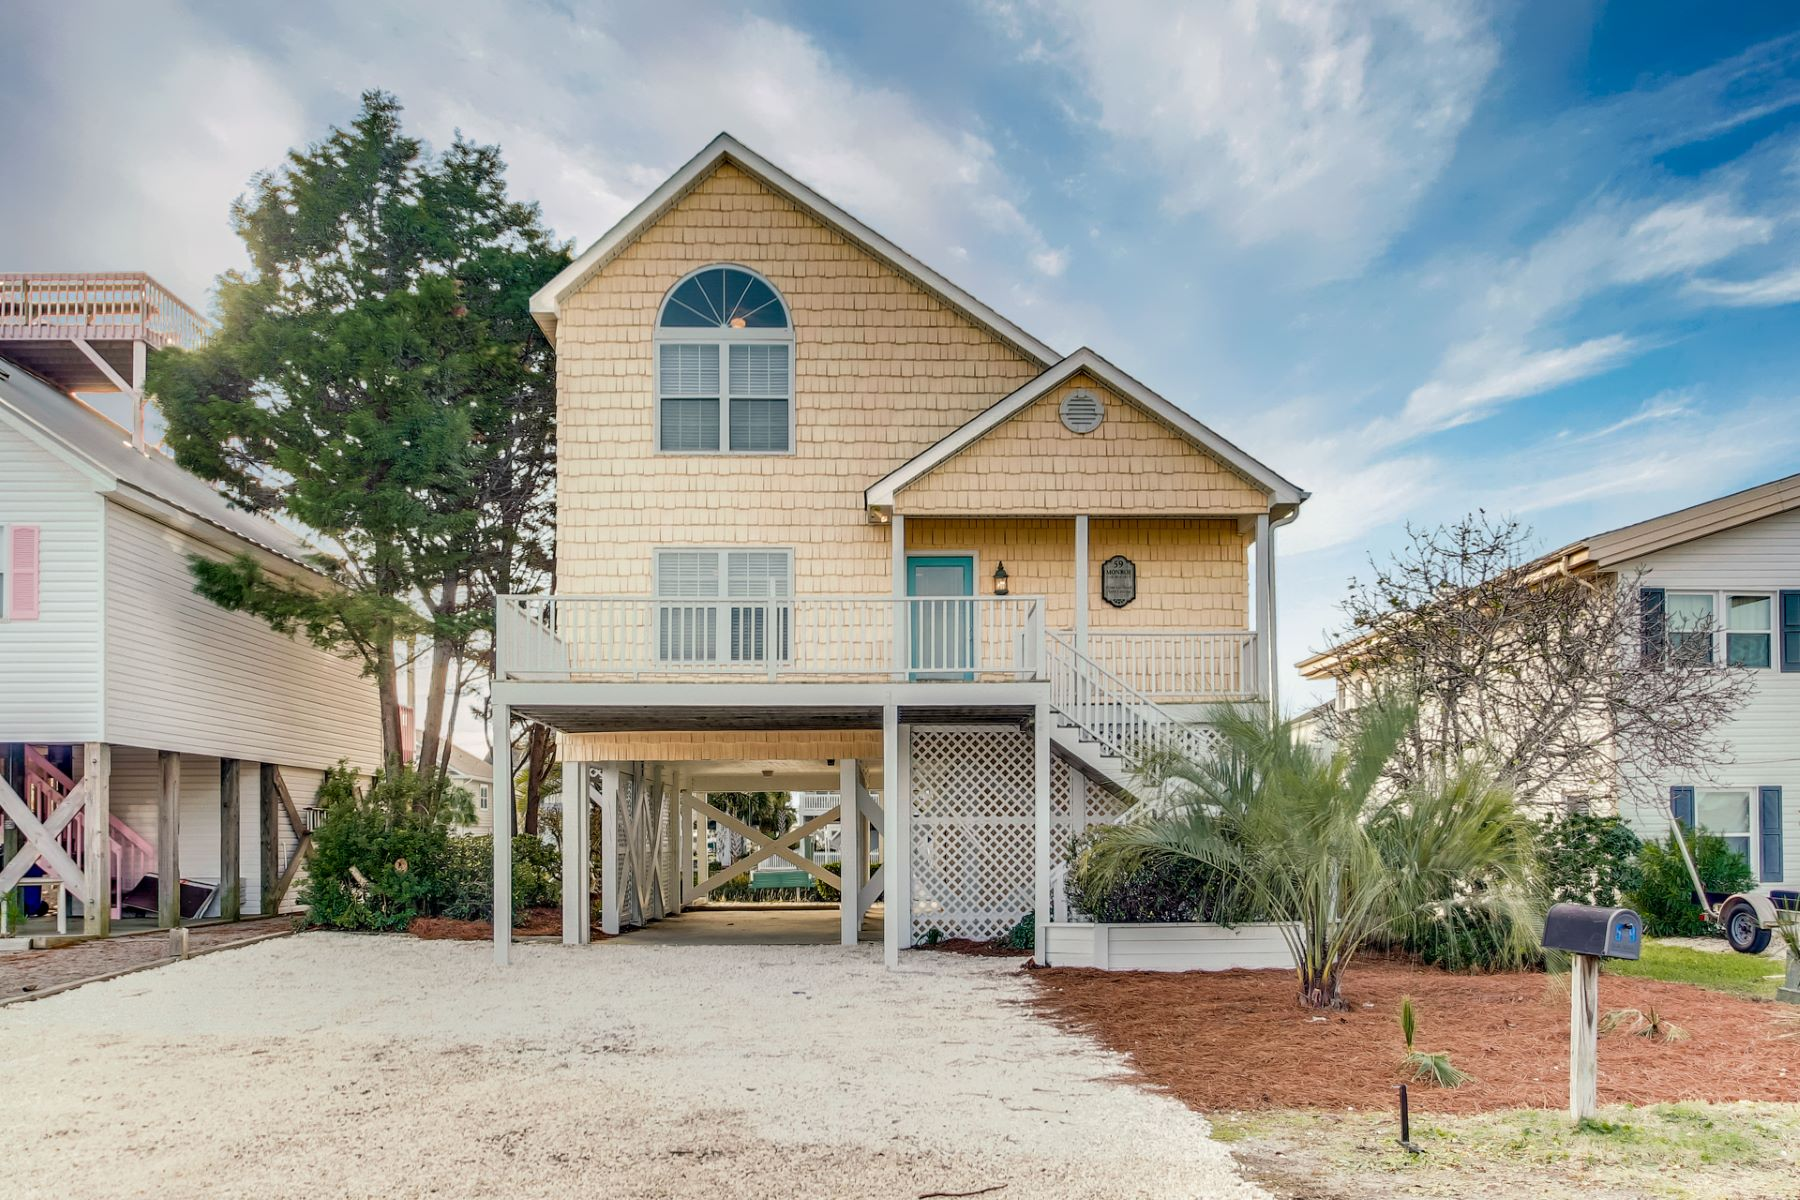 Single Family Homes for Active at Cozy Beach House 59 Monroe Street Ocean Isle Beach, North Carolina 28469 United States